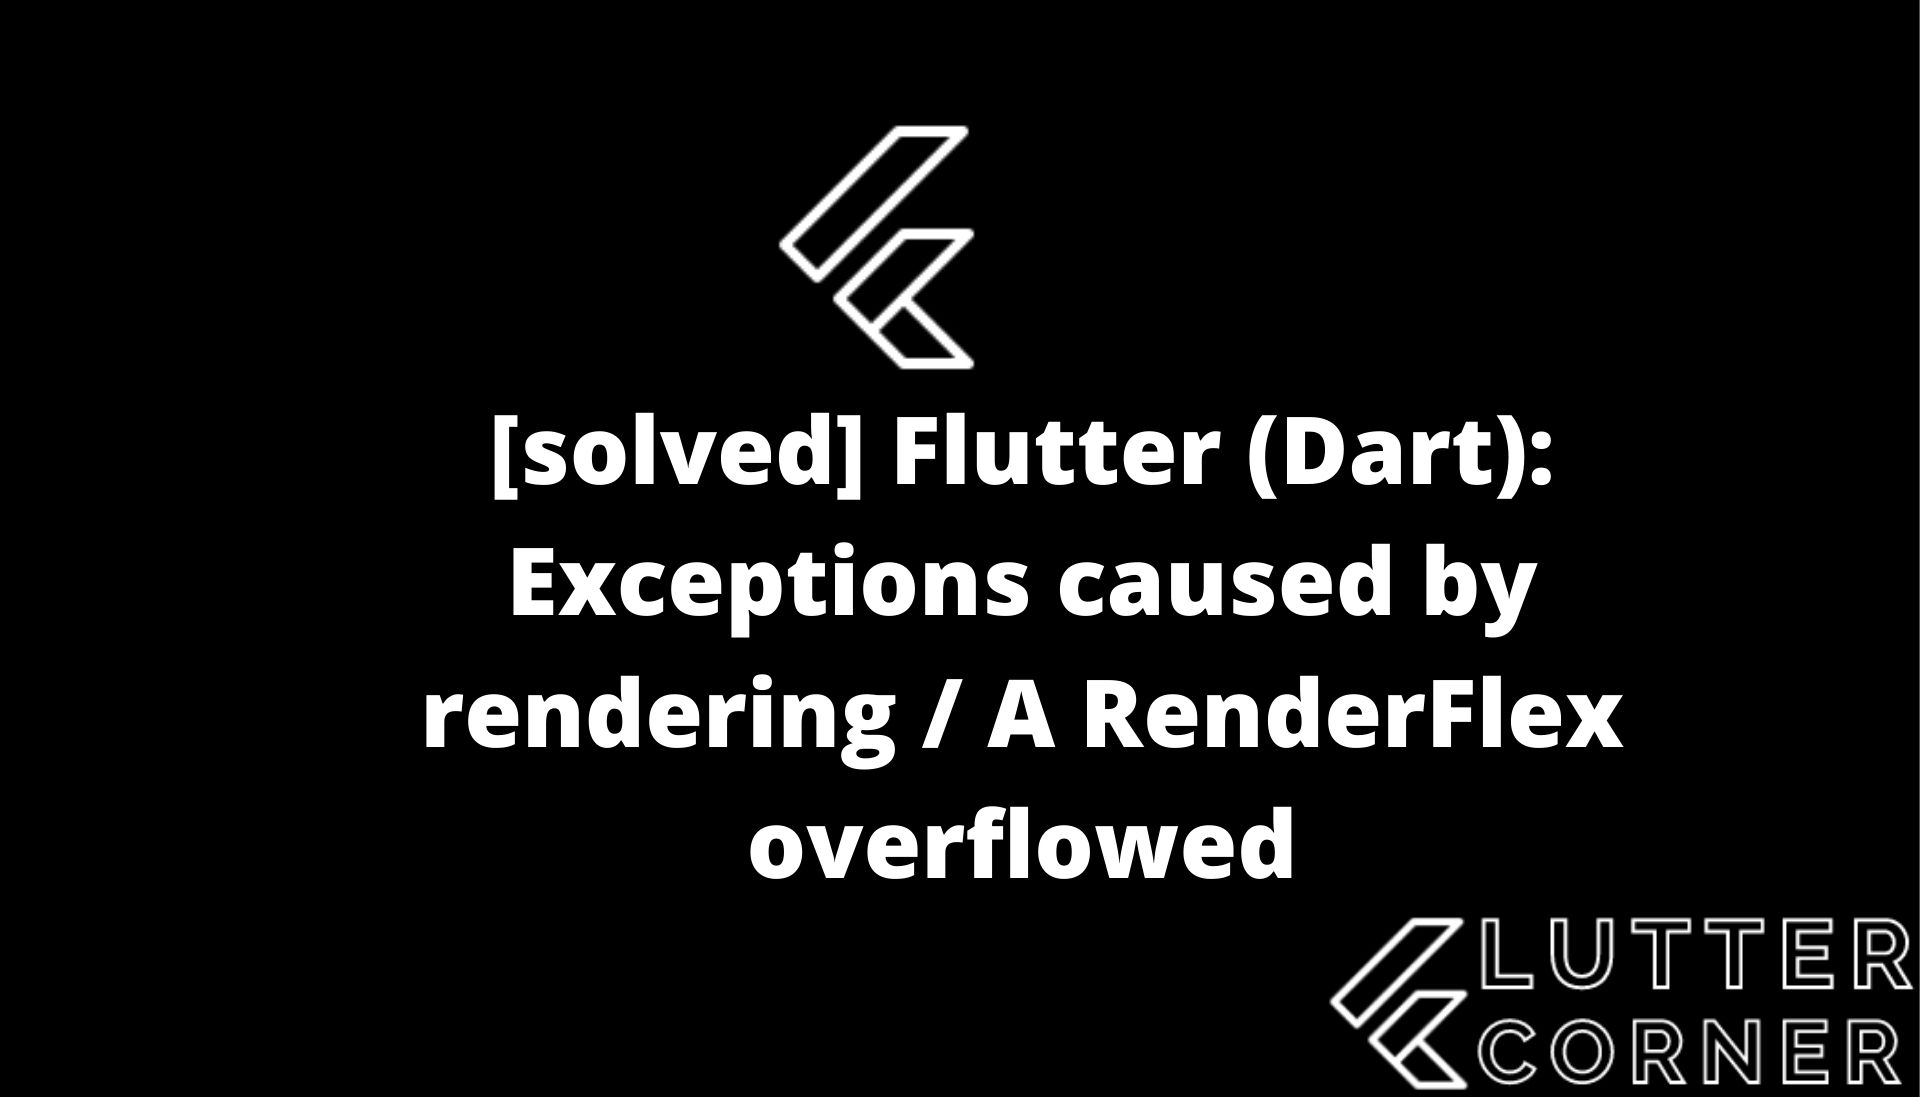 Exceptions caused by rendering / A RenderFlex overflowed, renderflex overflowed by 28 pixels, exceptions caused by rendering, dart exceptions caused by rendering, flutter dart exceptions caused